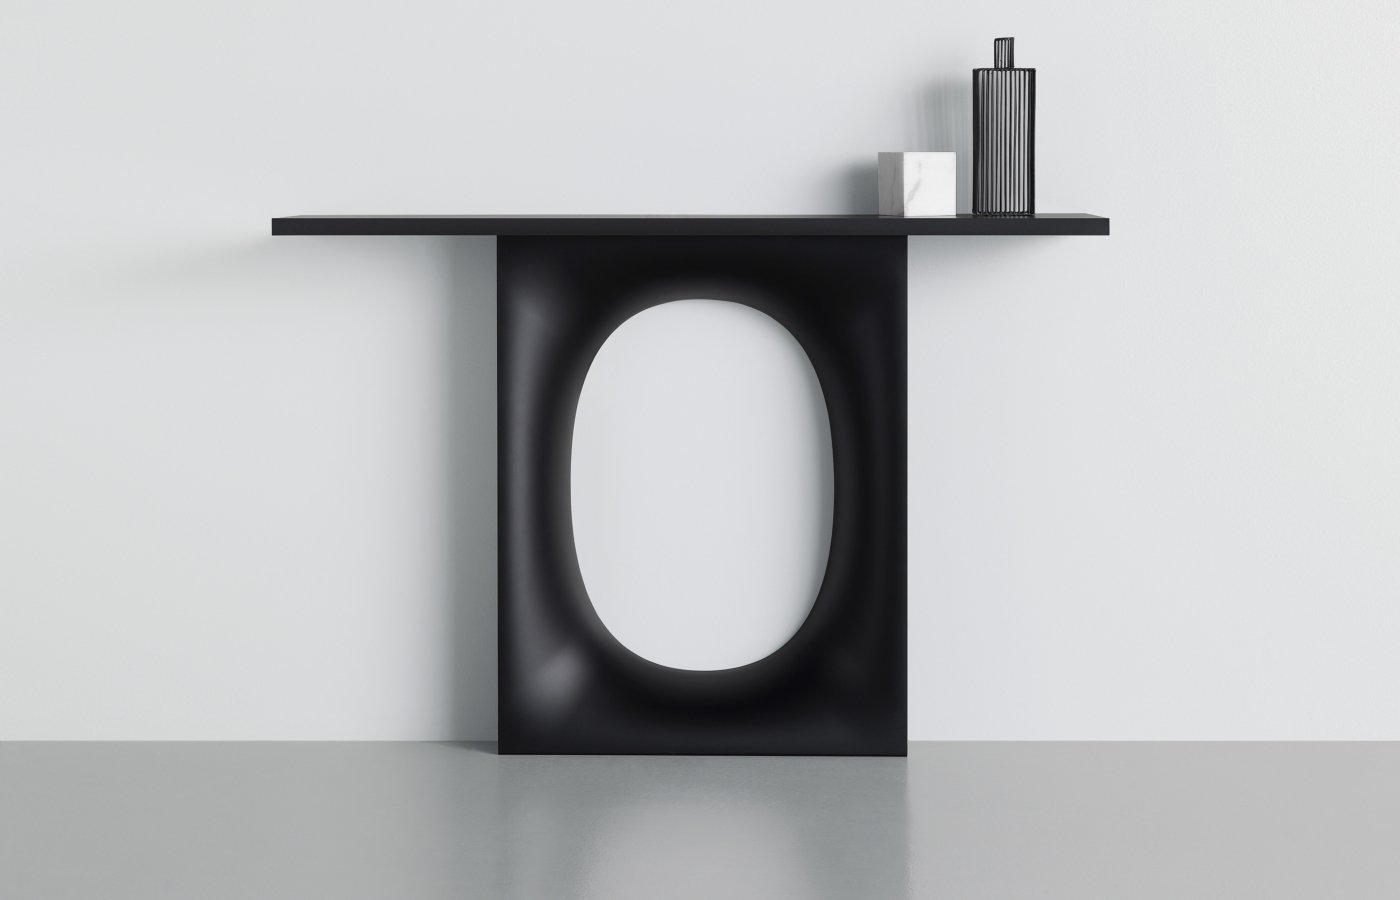 Holo console table from Kristalia, designed by Kensaku Oshiro